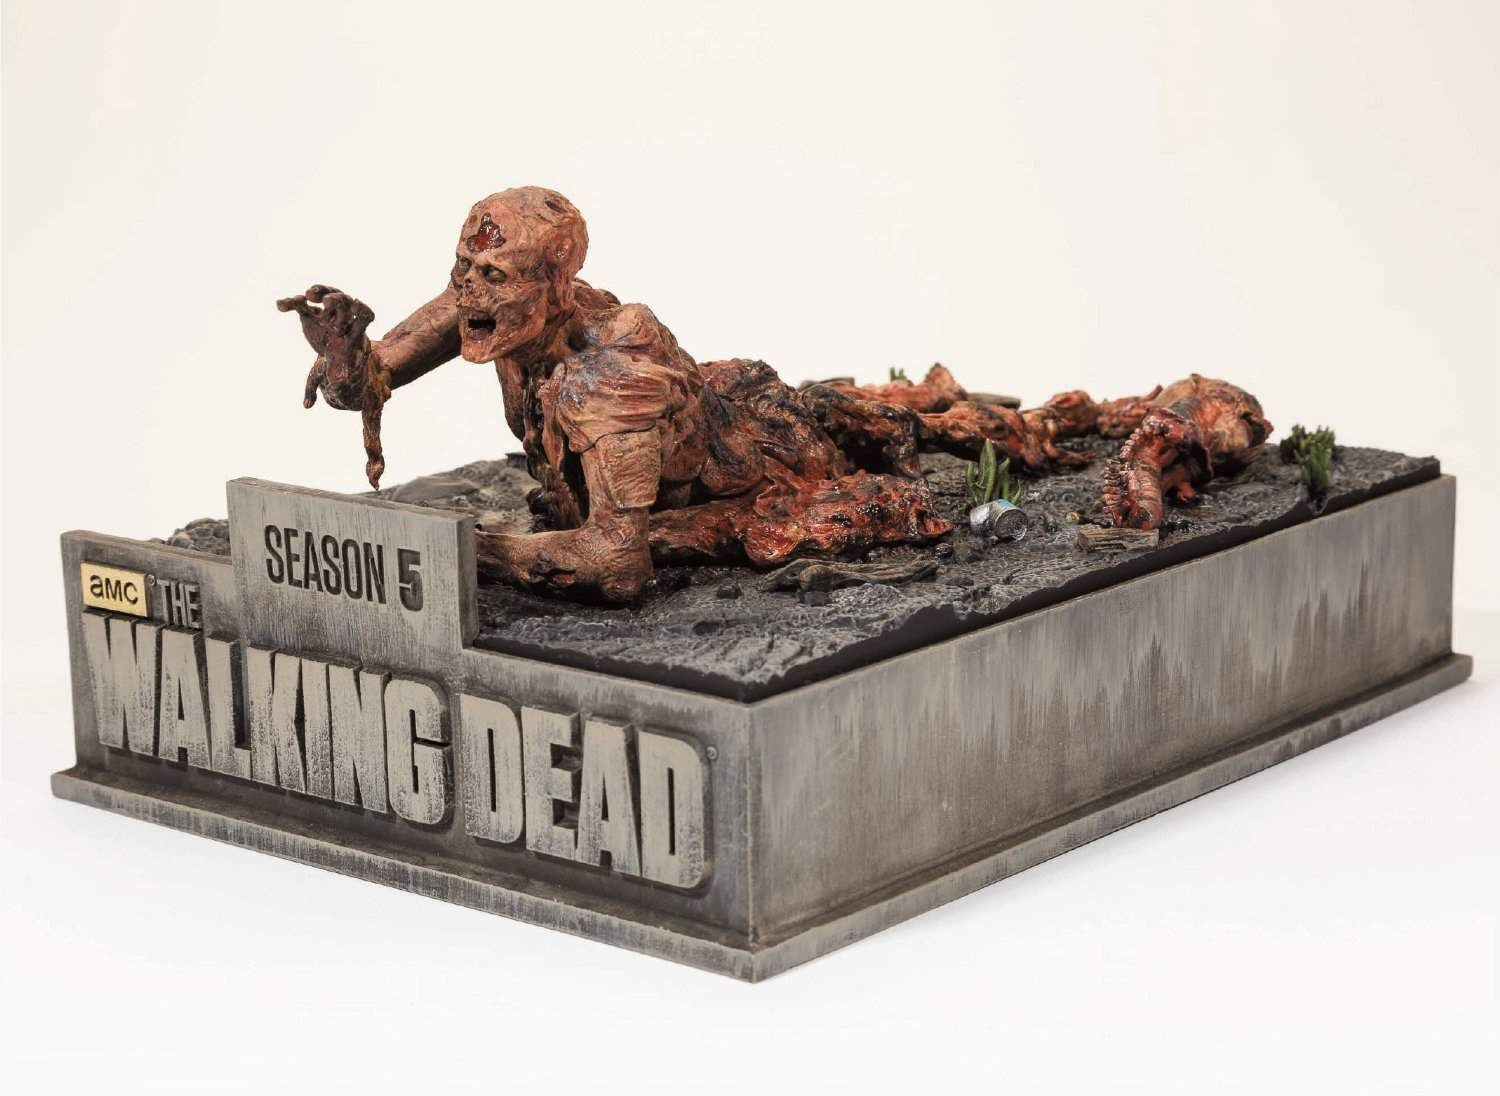 The Limited Edition of The Walking Dead Season 5 Blu Ray, created by McFarlane Toys